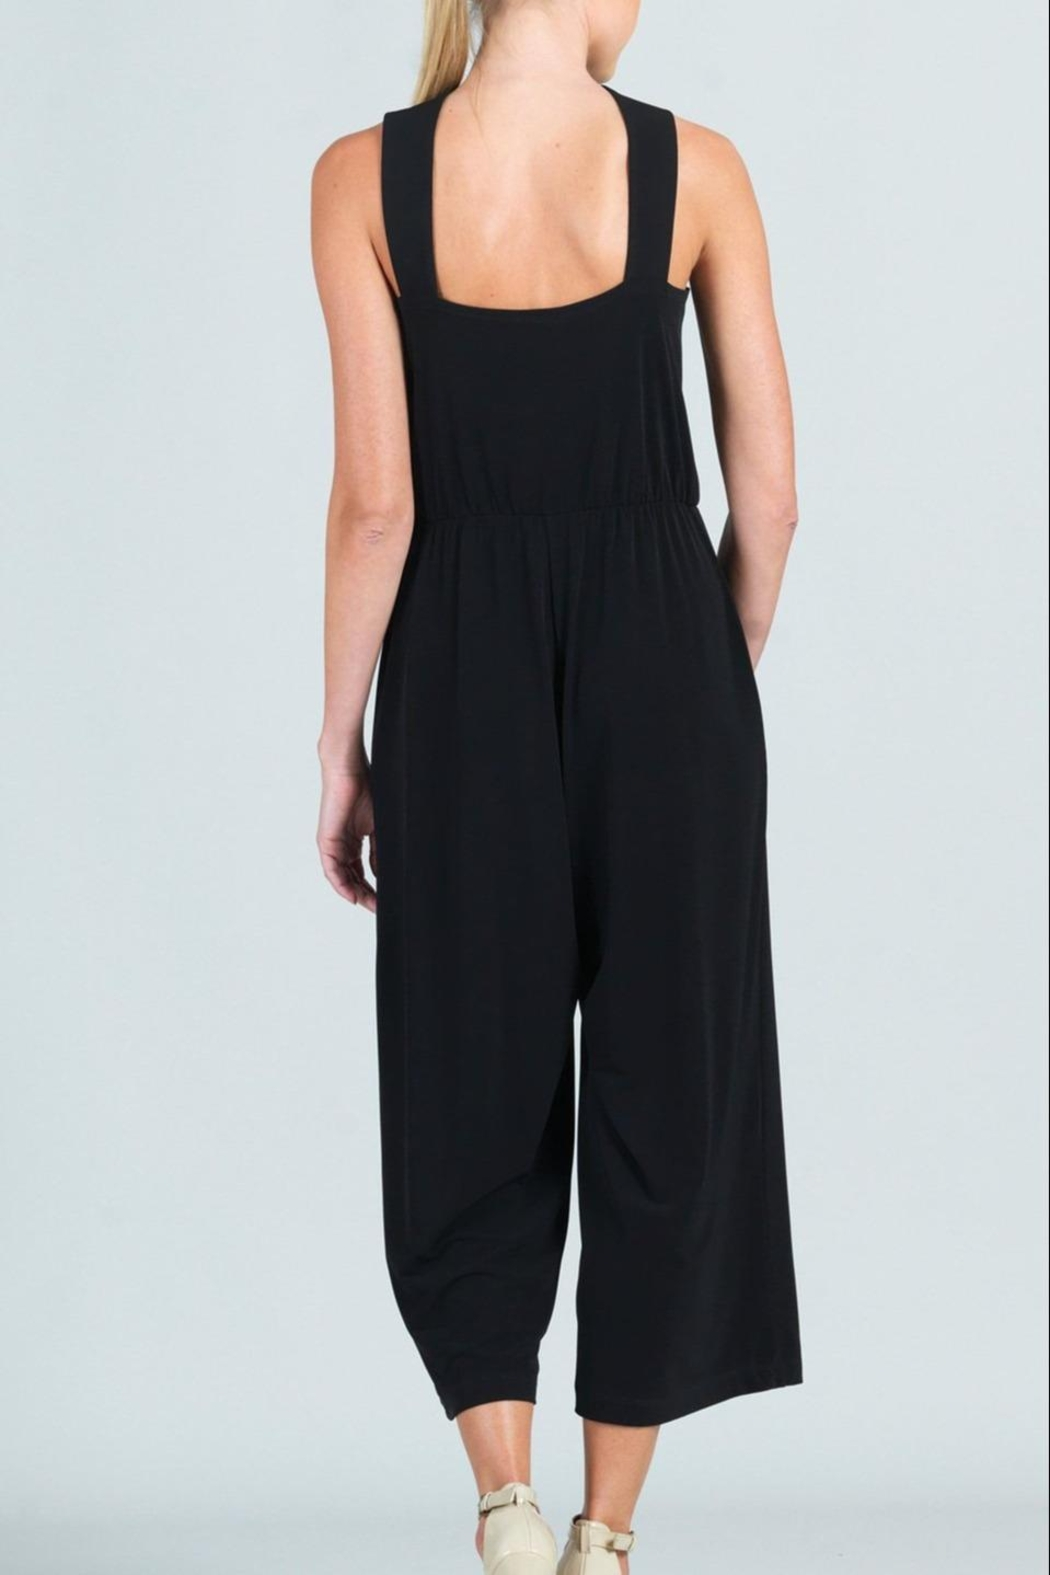 Clara Sunwoo Cross-Front Cropped-Halter Jumpsuit - Back Cropped Image